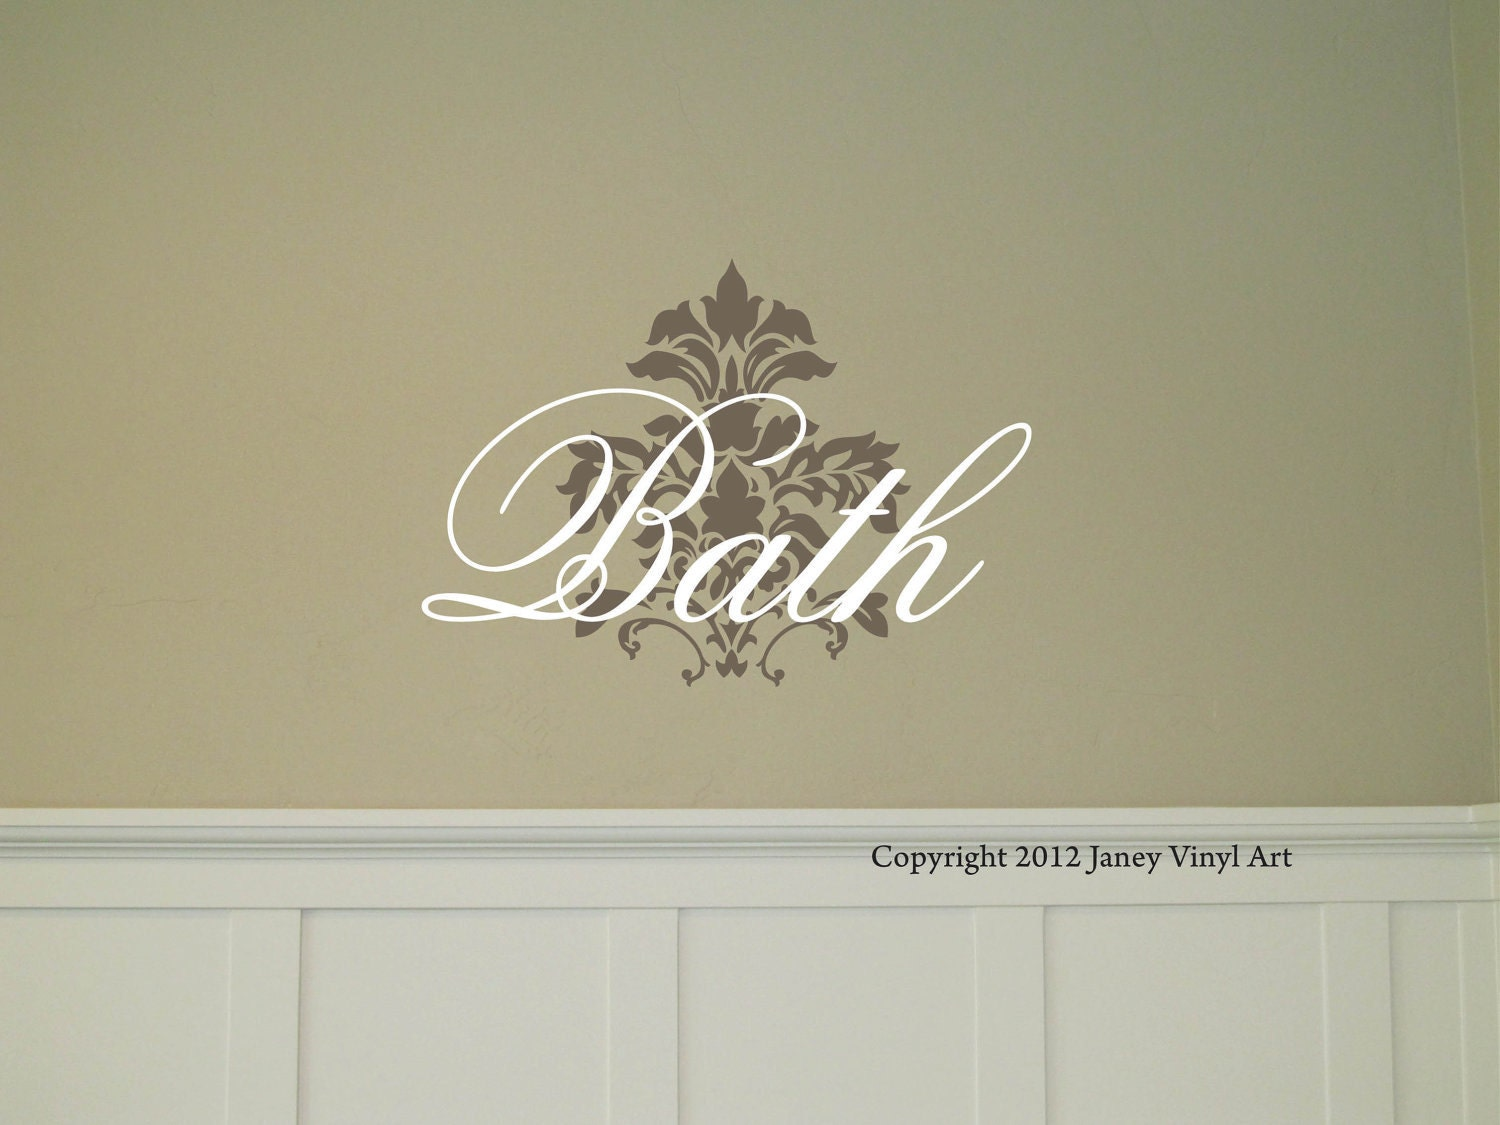 Bathroom Lettering Decor : Bath wall decal bathroom decor vinyl lettering by